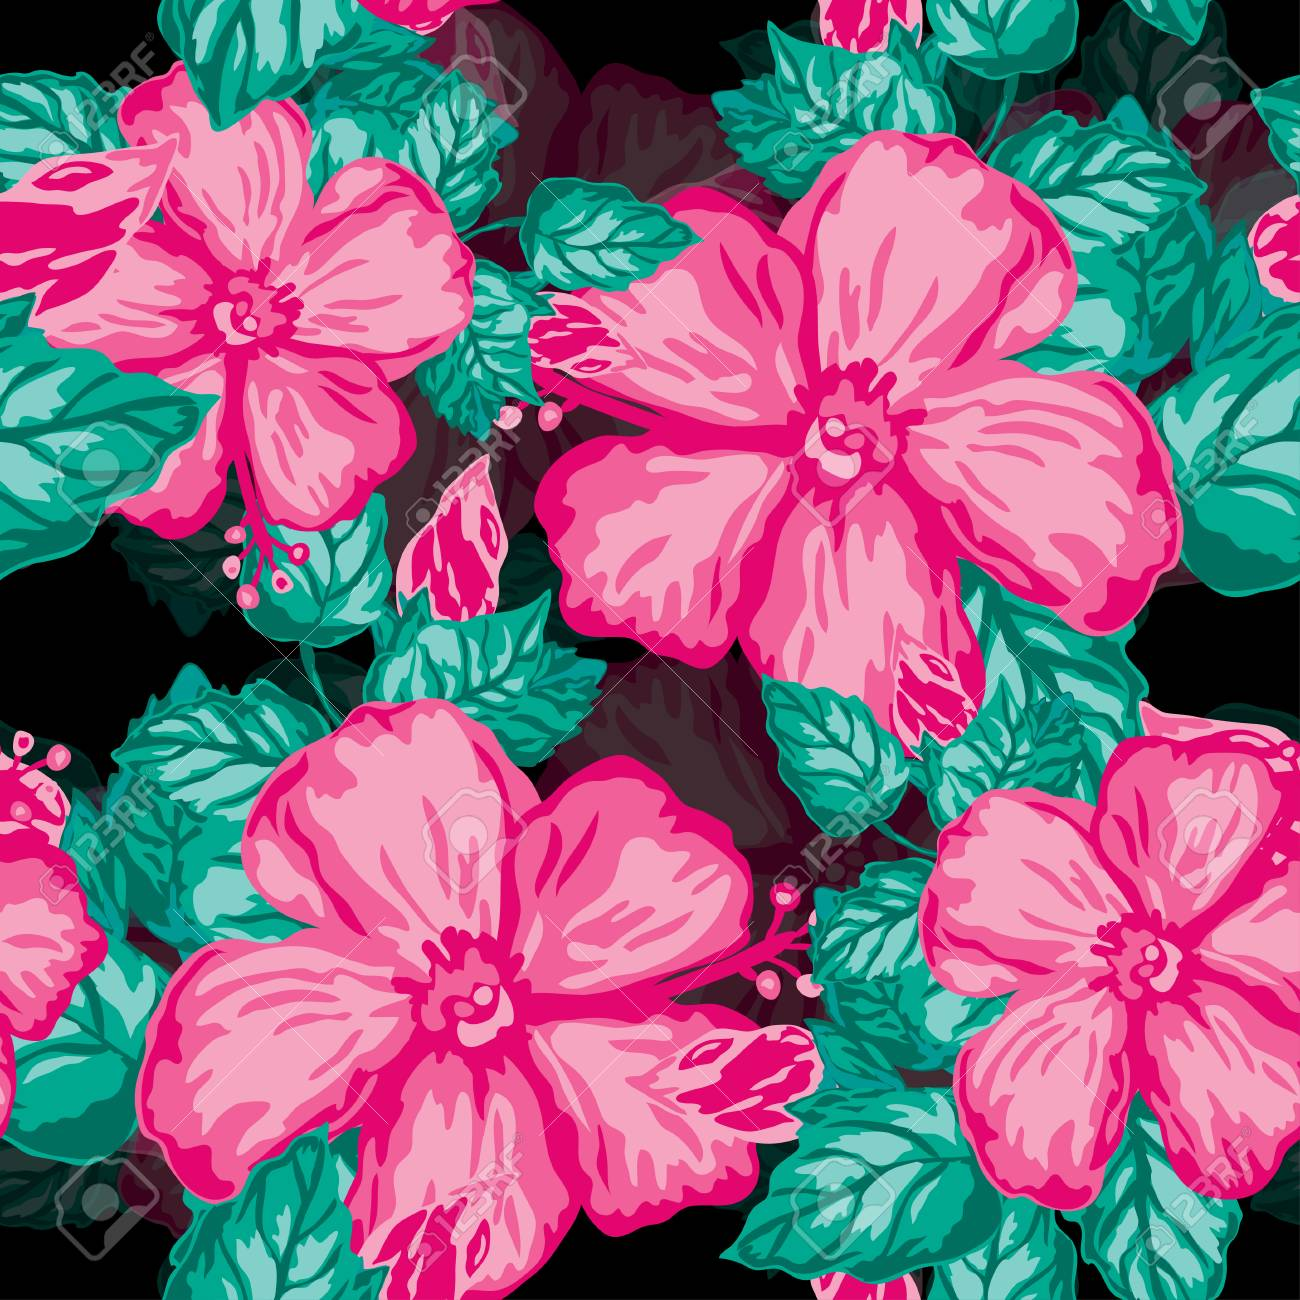 Elegant Seamless Pattern With Hibiscus Flowers Design Elements